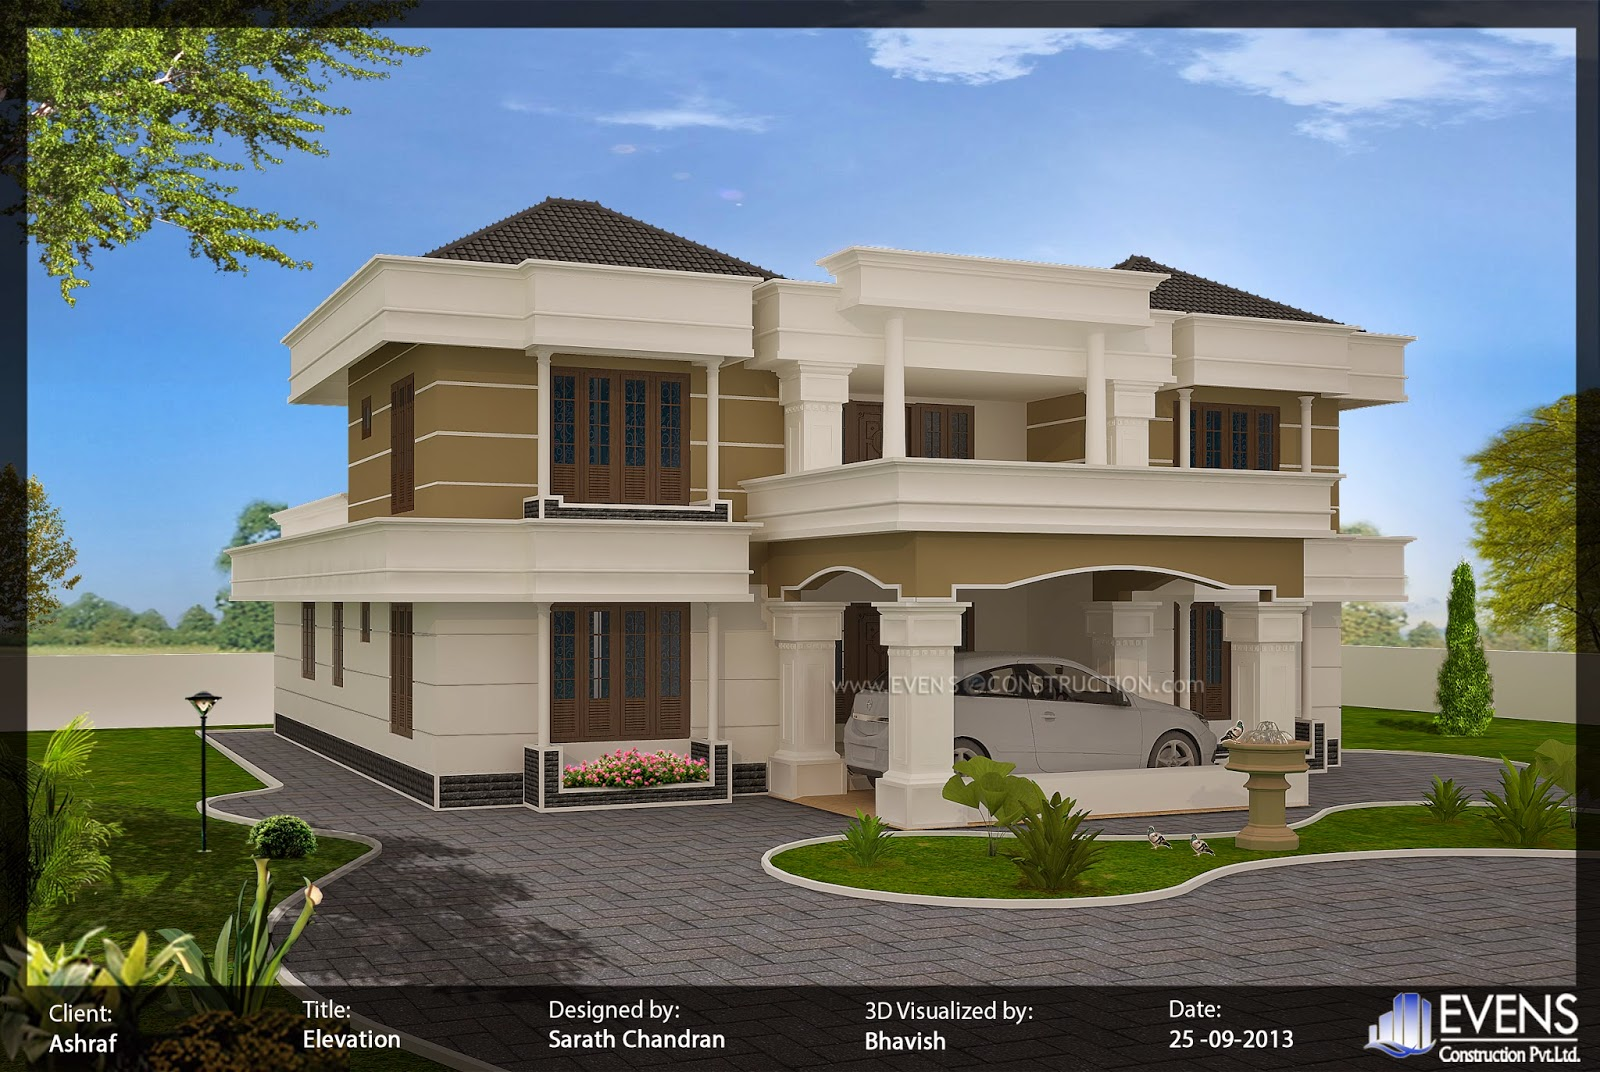 Evens construction pvt ltd modern house design for Home designs ltd